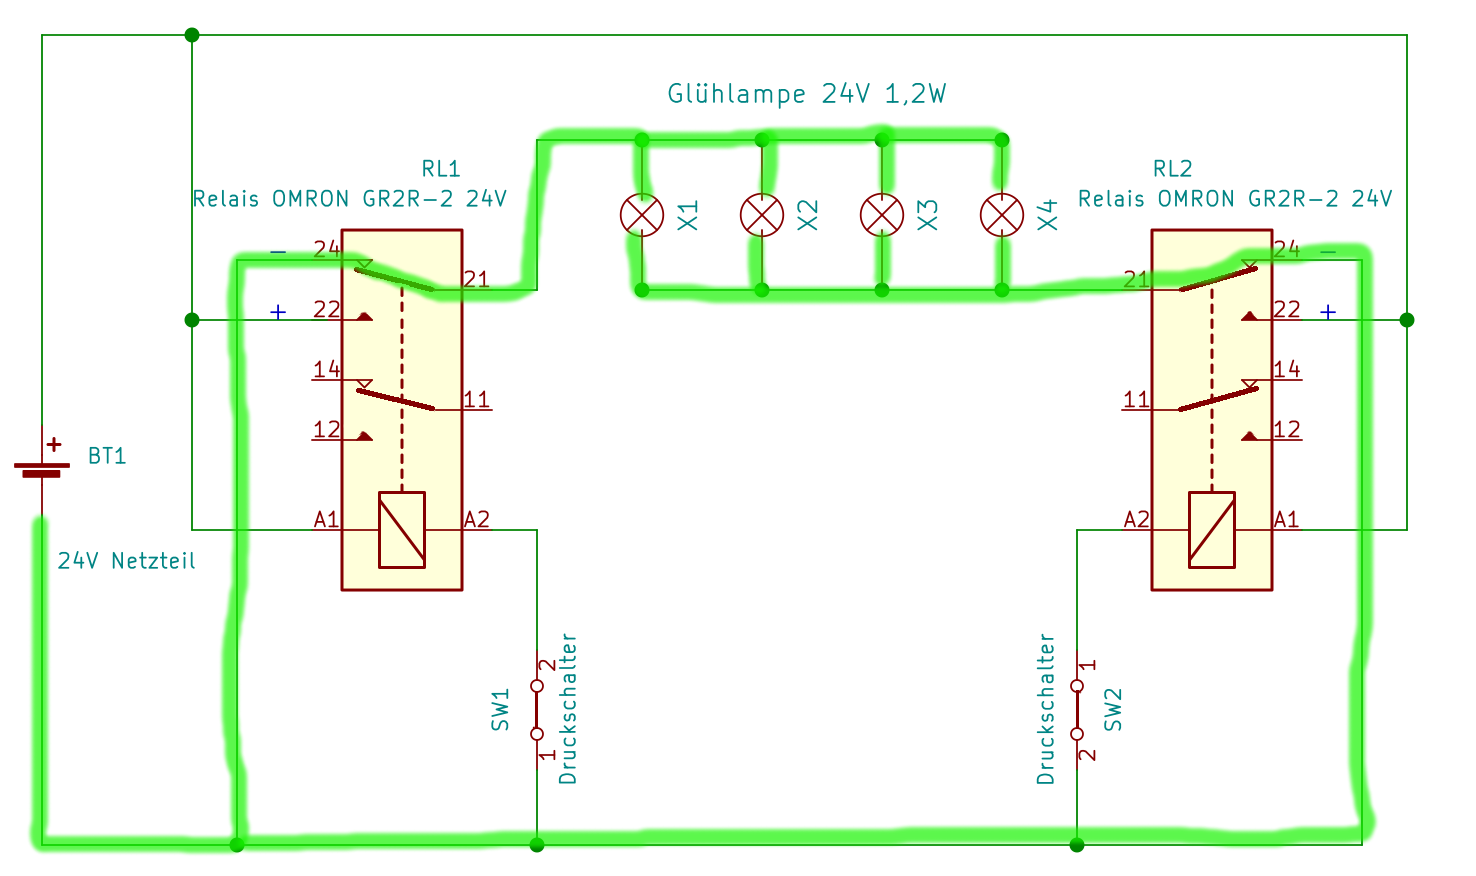 wechselschaltung fur 2 lampen wiring diagram. Black Bedroom Furniture Sets. Home Design Ideas